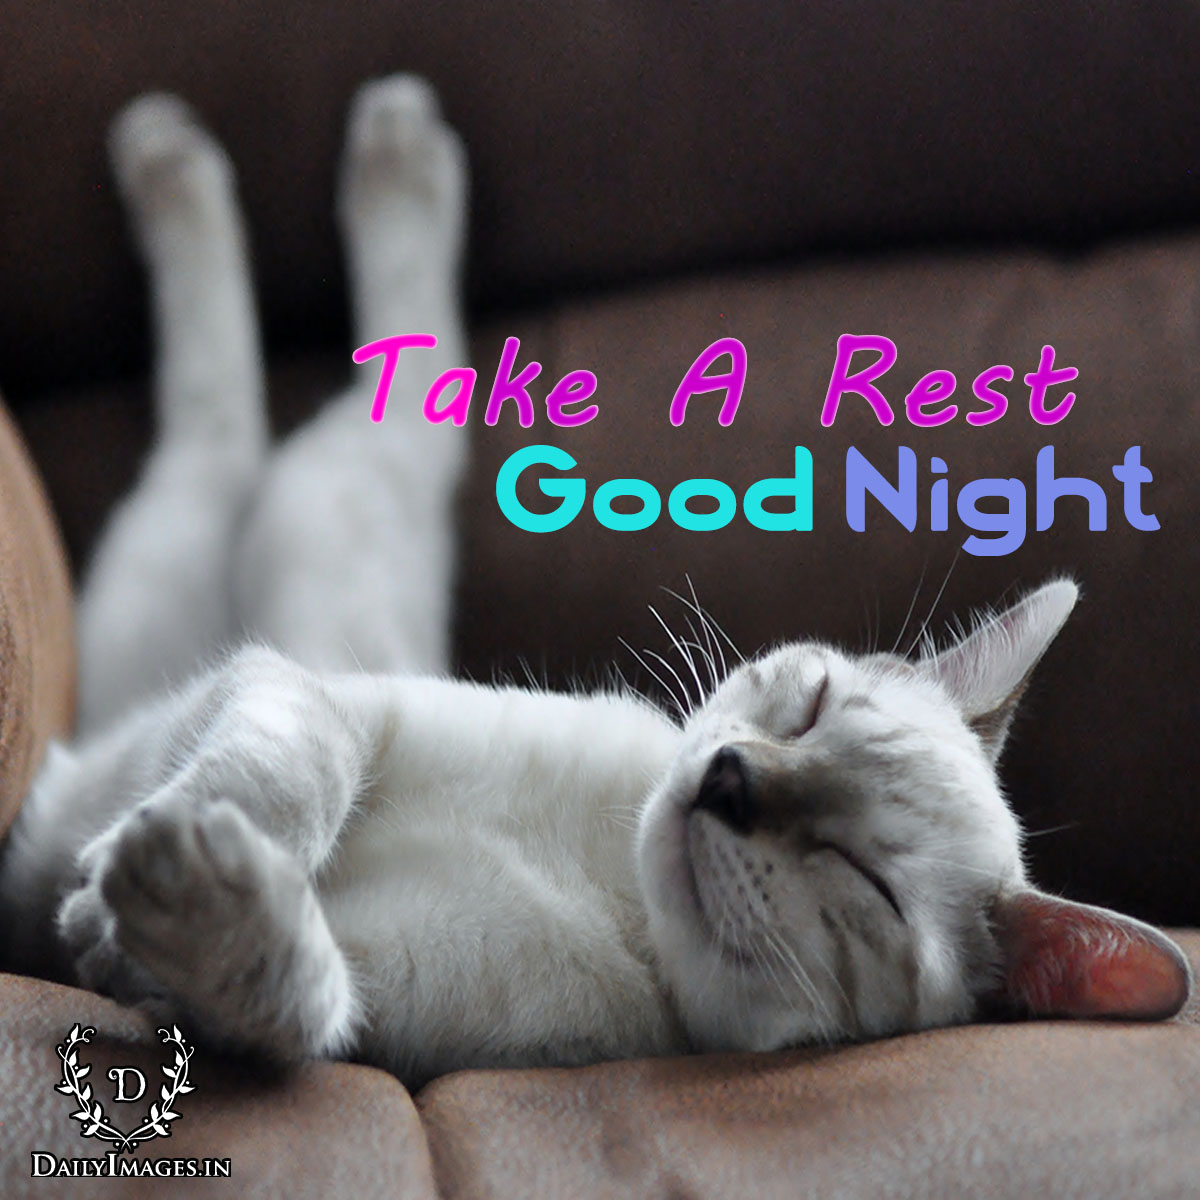 Changing To Night  clipart rest Good #goodnight Take Take Rest